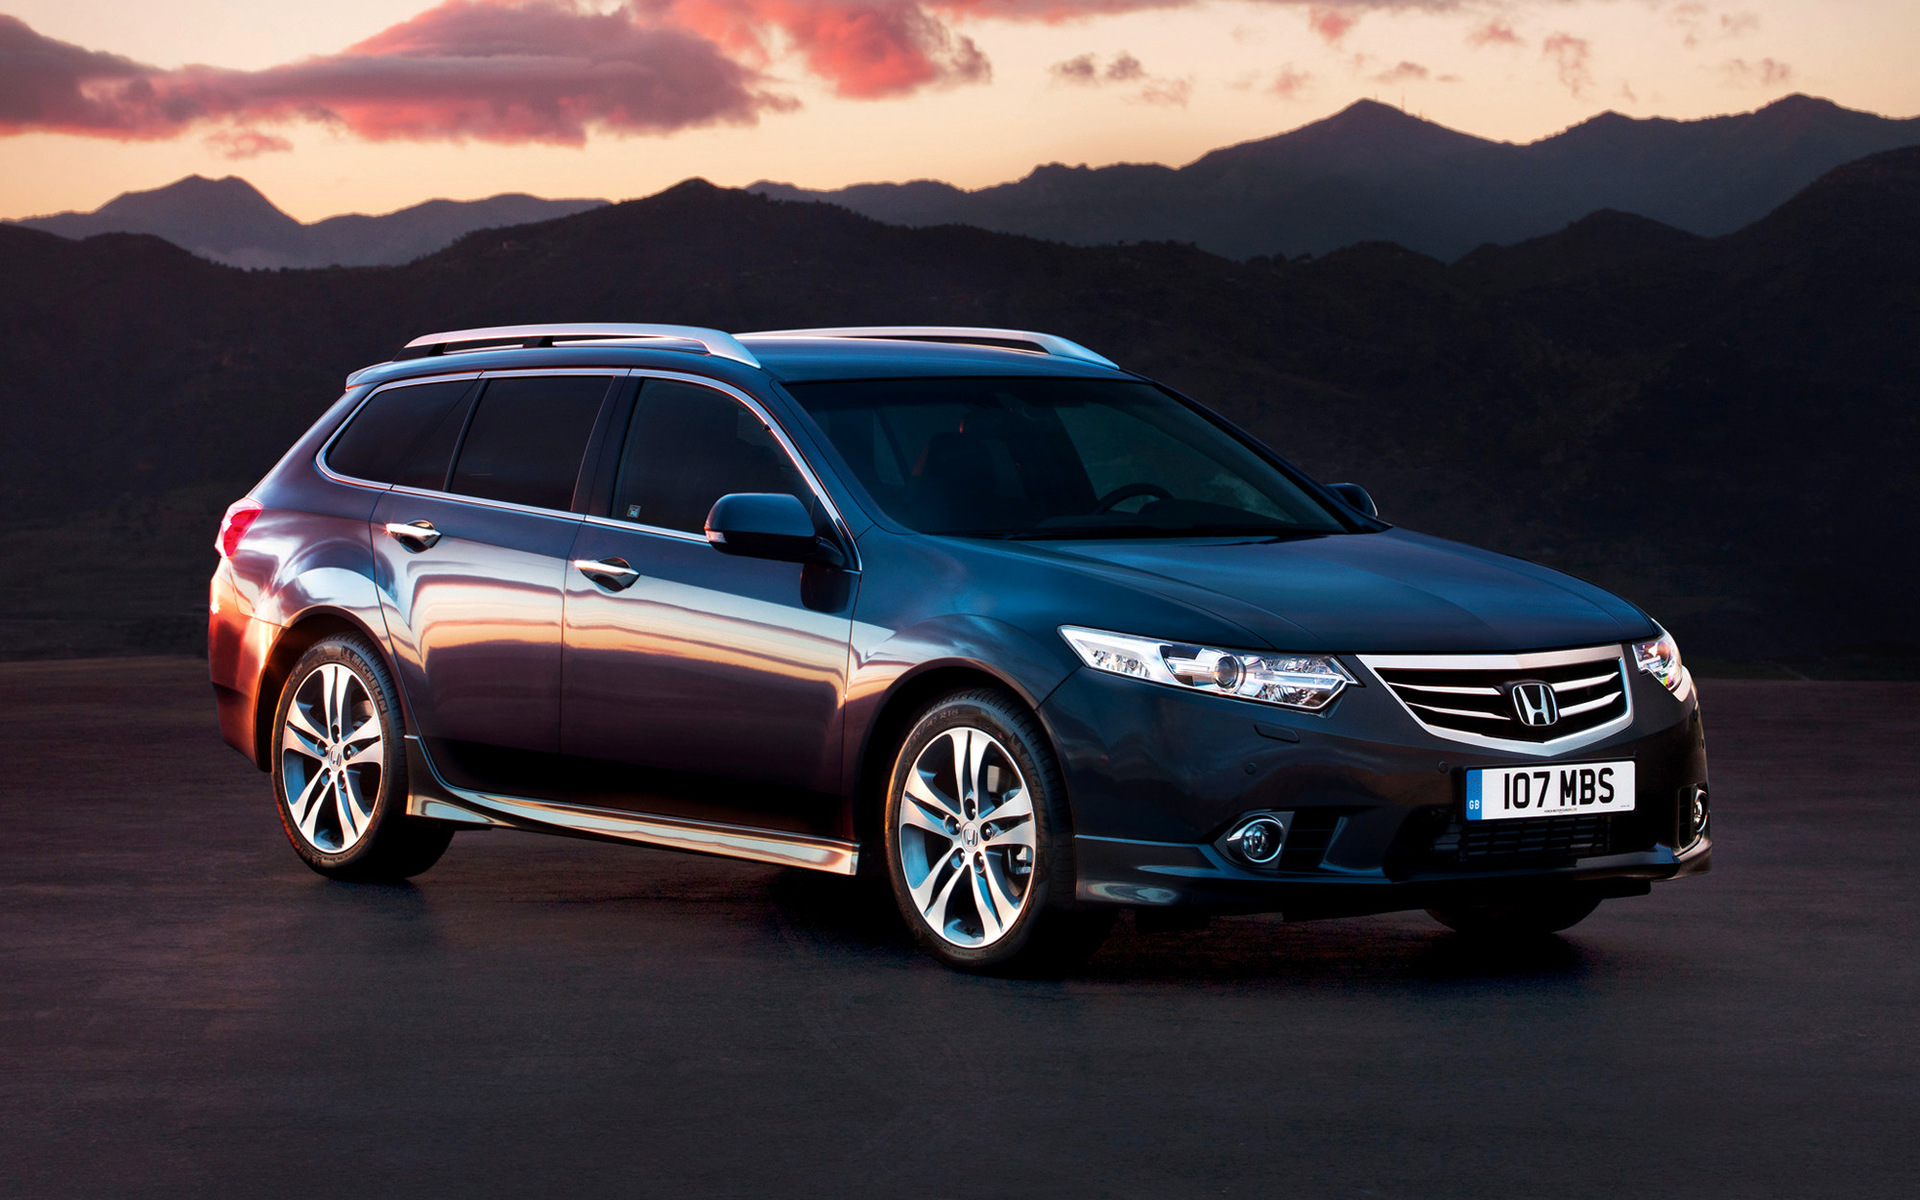 Honda accord type s tourer 2011 wallpapers and hd images for Honda accord type s